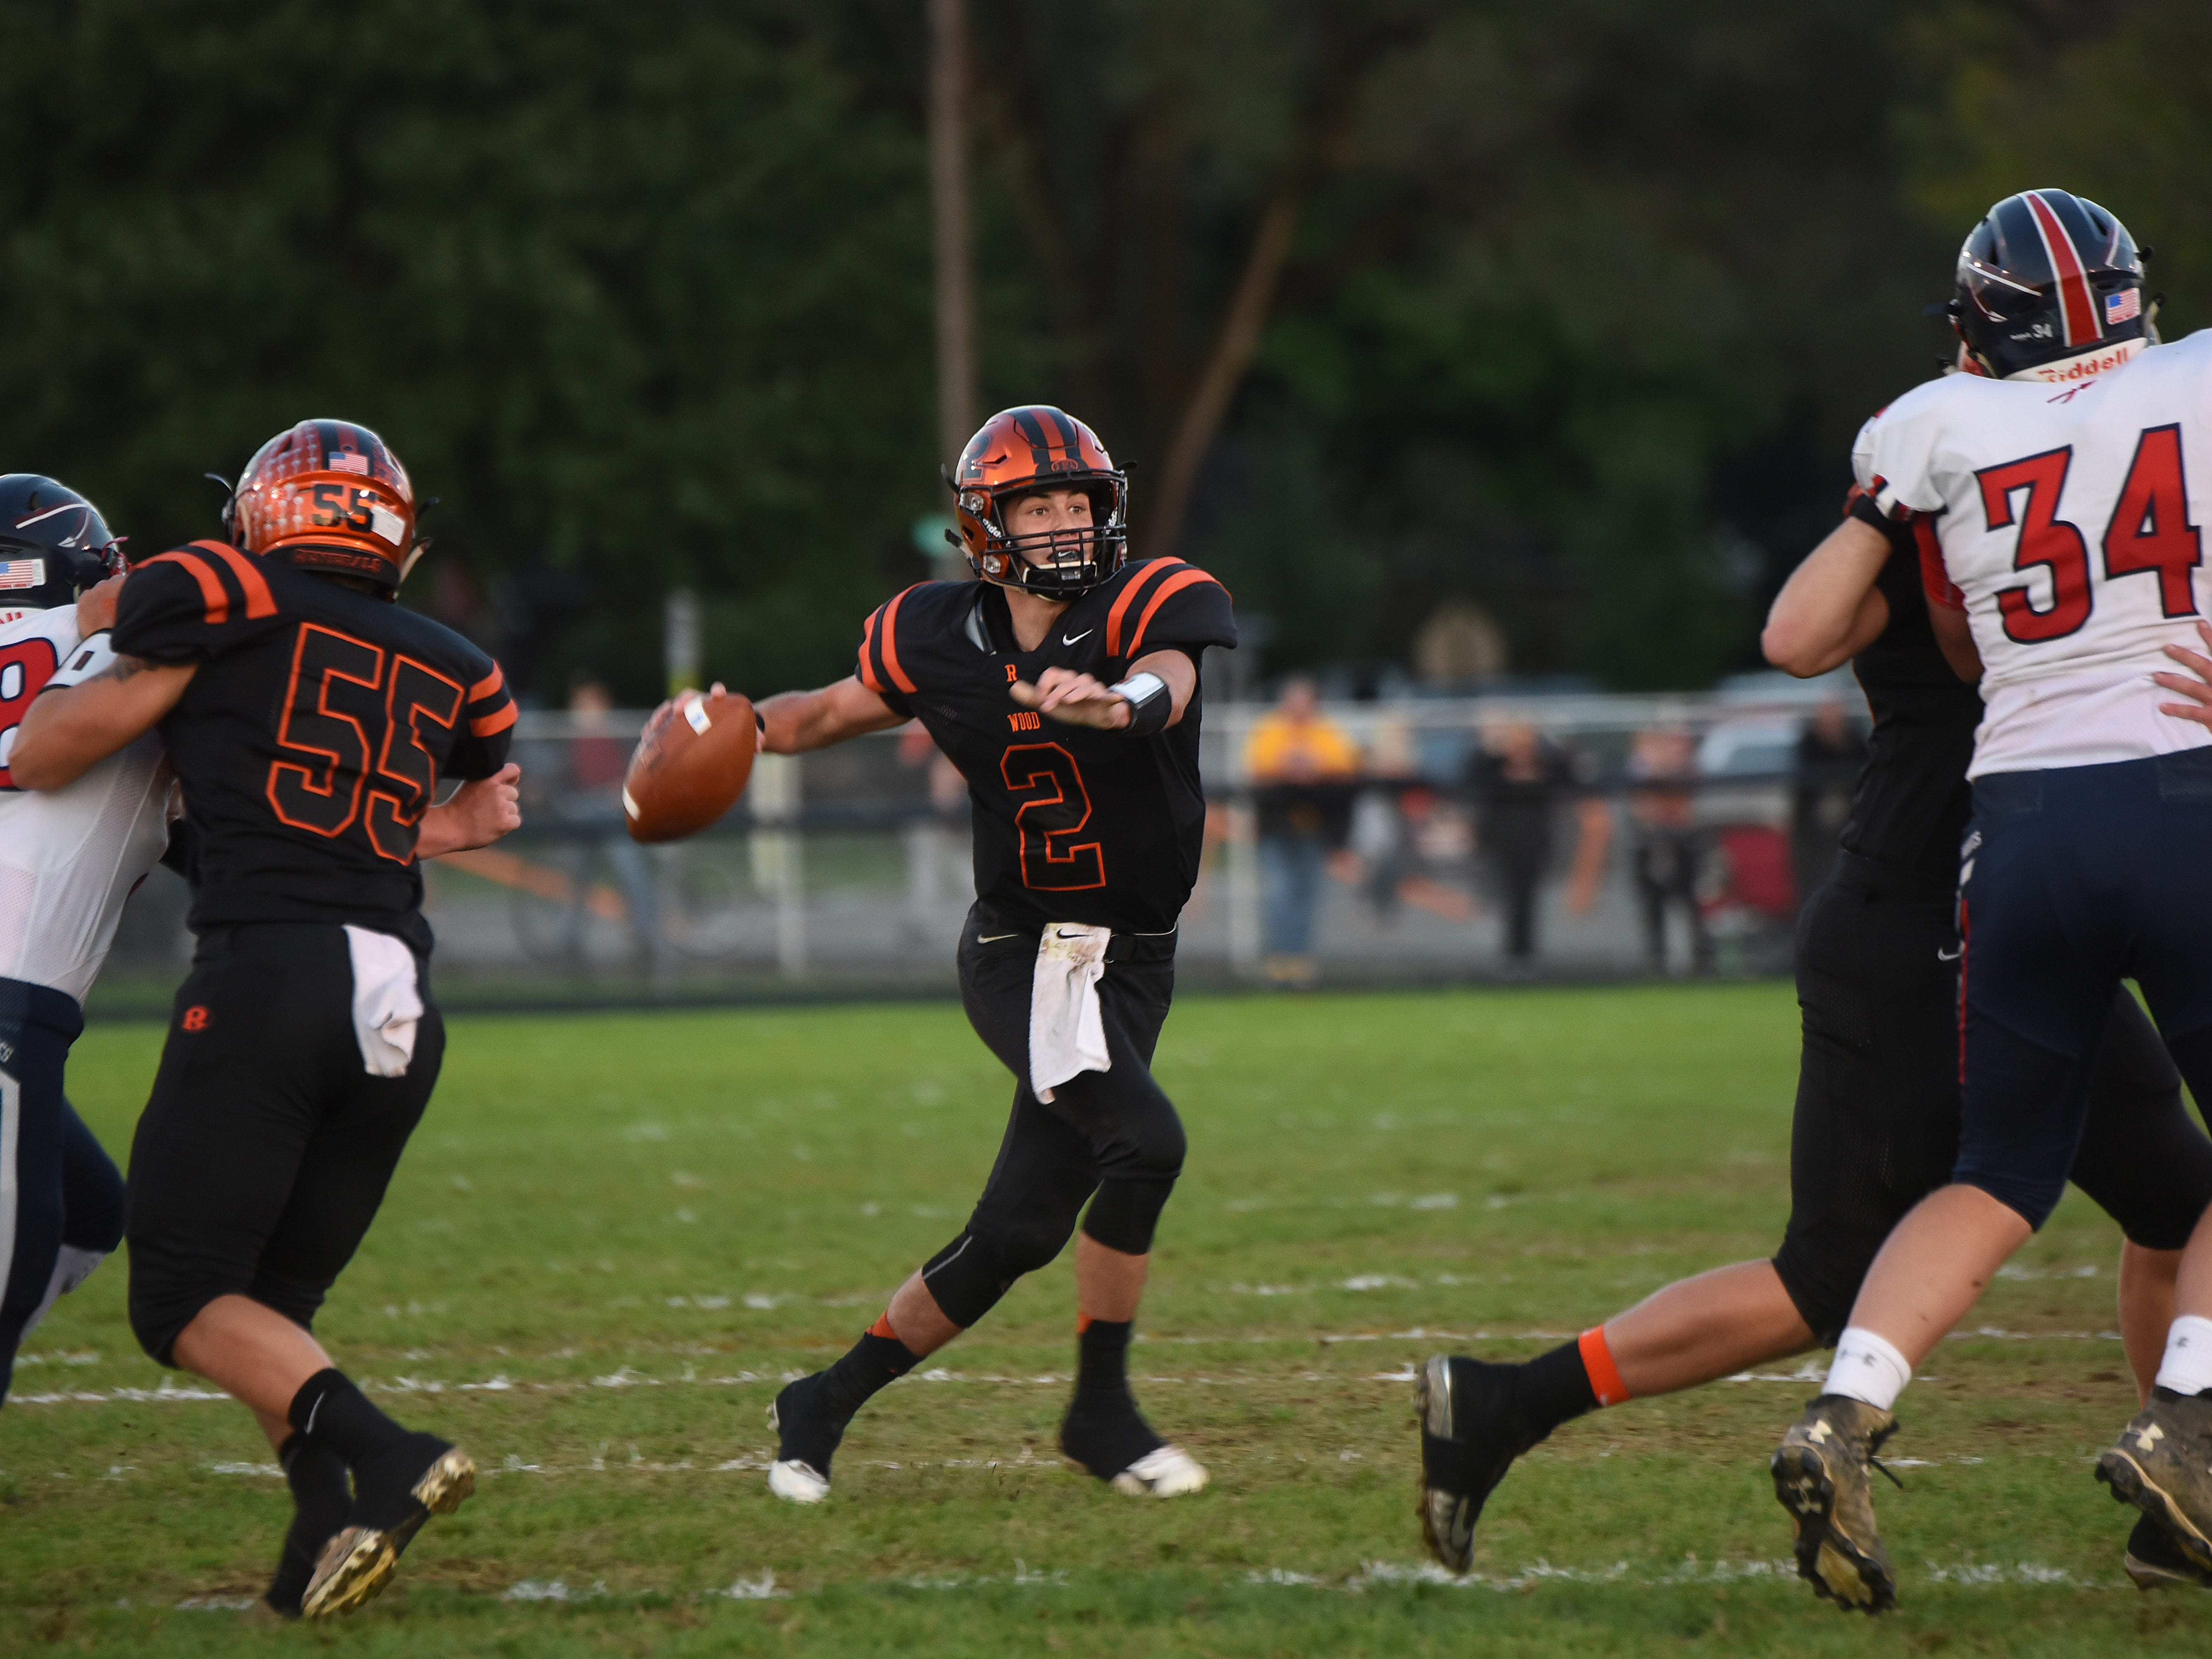 Ridgewood has plenty of contributors, highlighted by freshman quarterback Gabe Tingle.  He recently threw for more than 300 yards and three touchdowns against Indian Valley. He and his fellow Generals will battle Garaway this week.